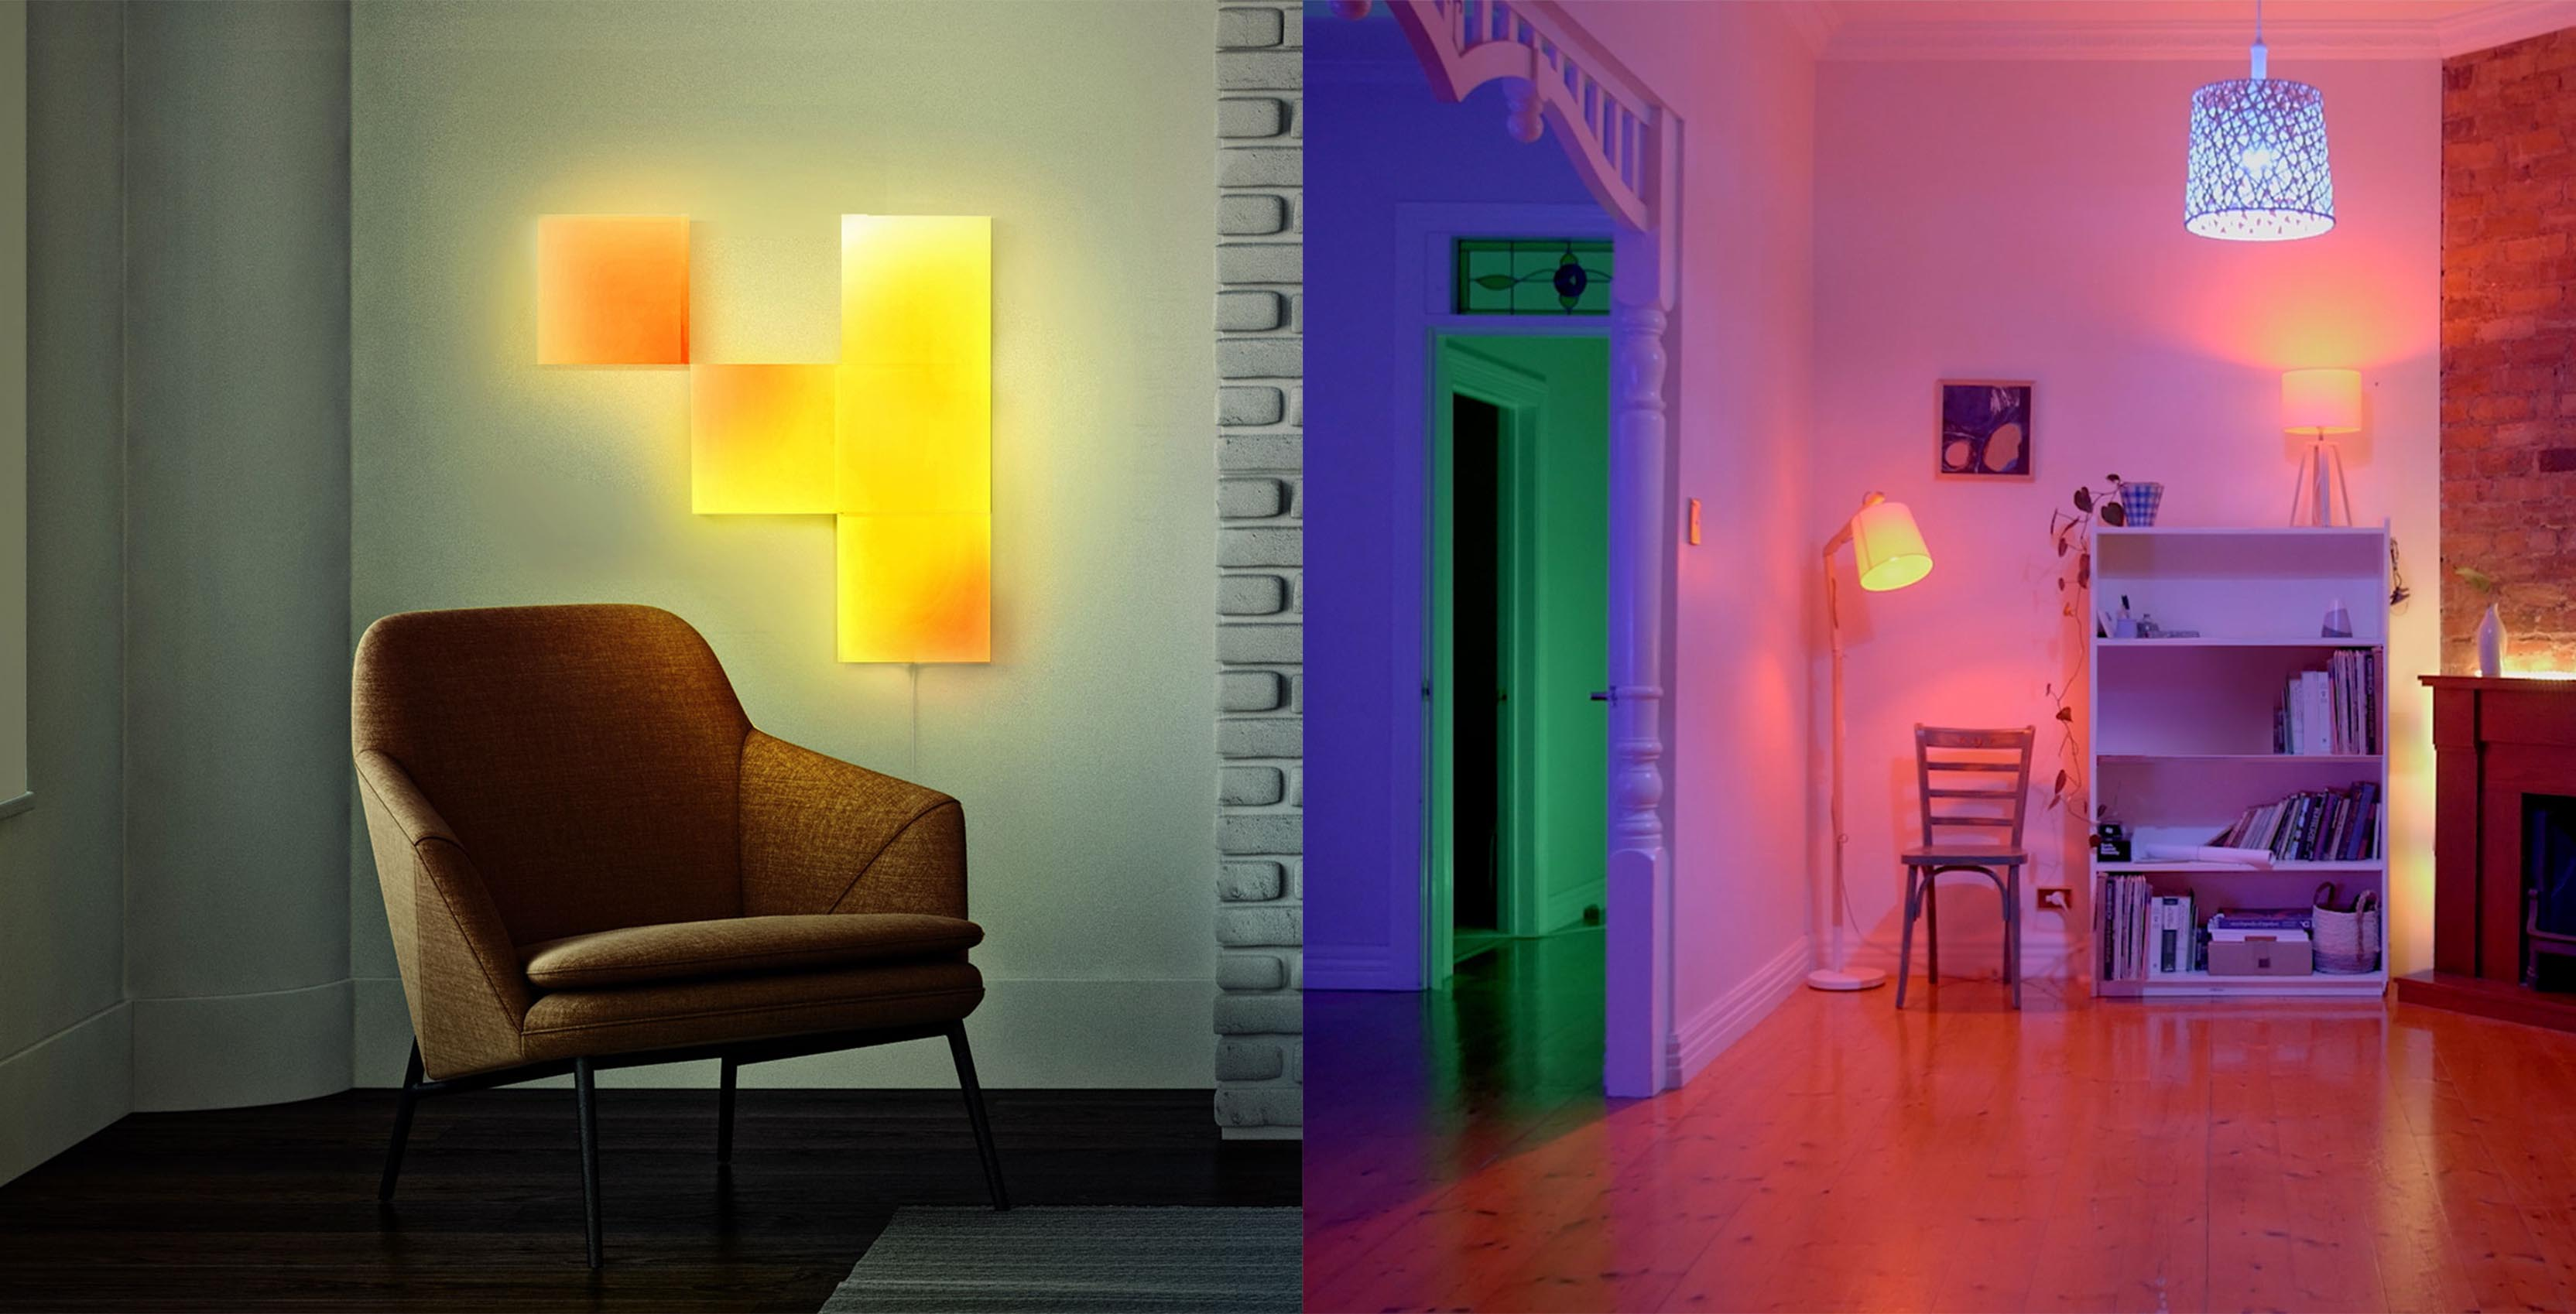 lifx launches black friday deals with